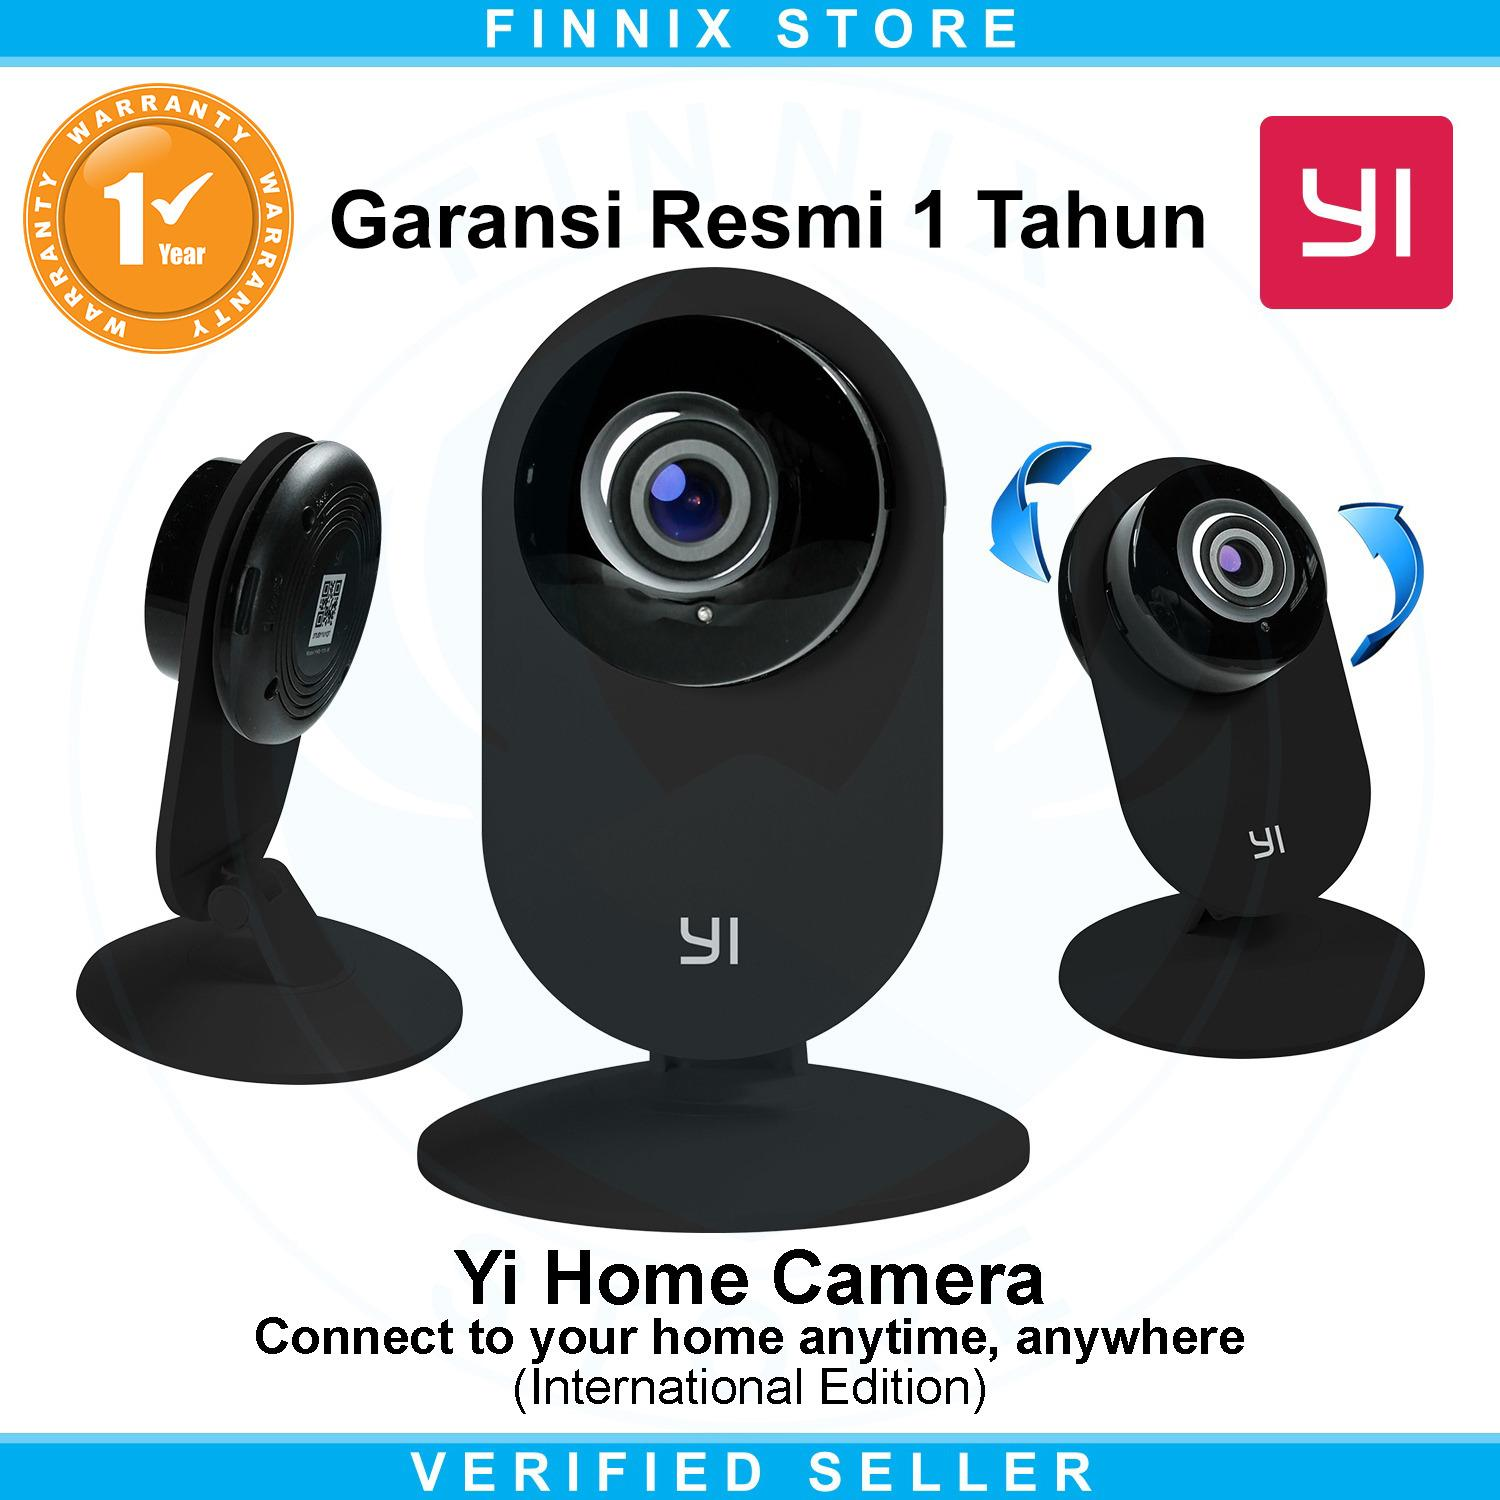 Spesifikasi Yi Home Camera 720P Hd Smart Cctv Ip Camera International Version Yi